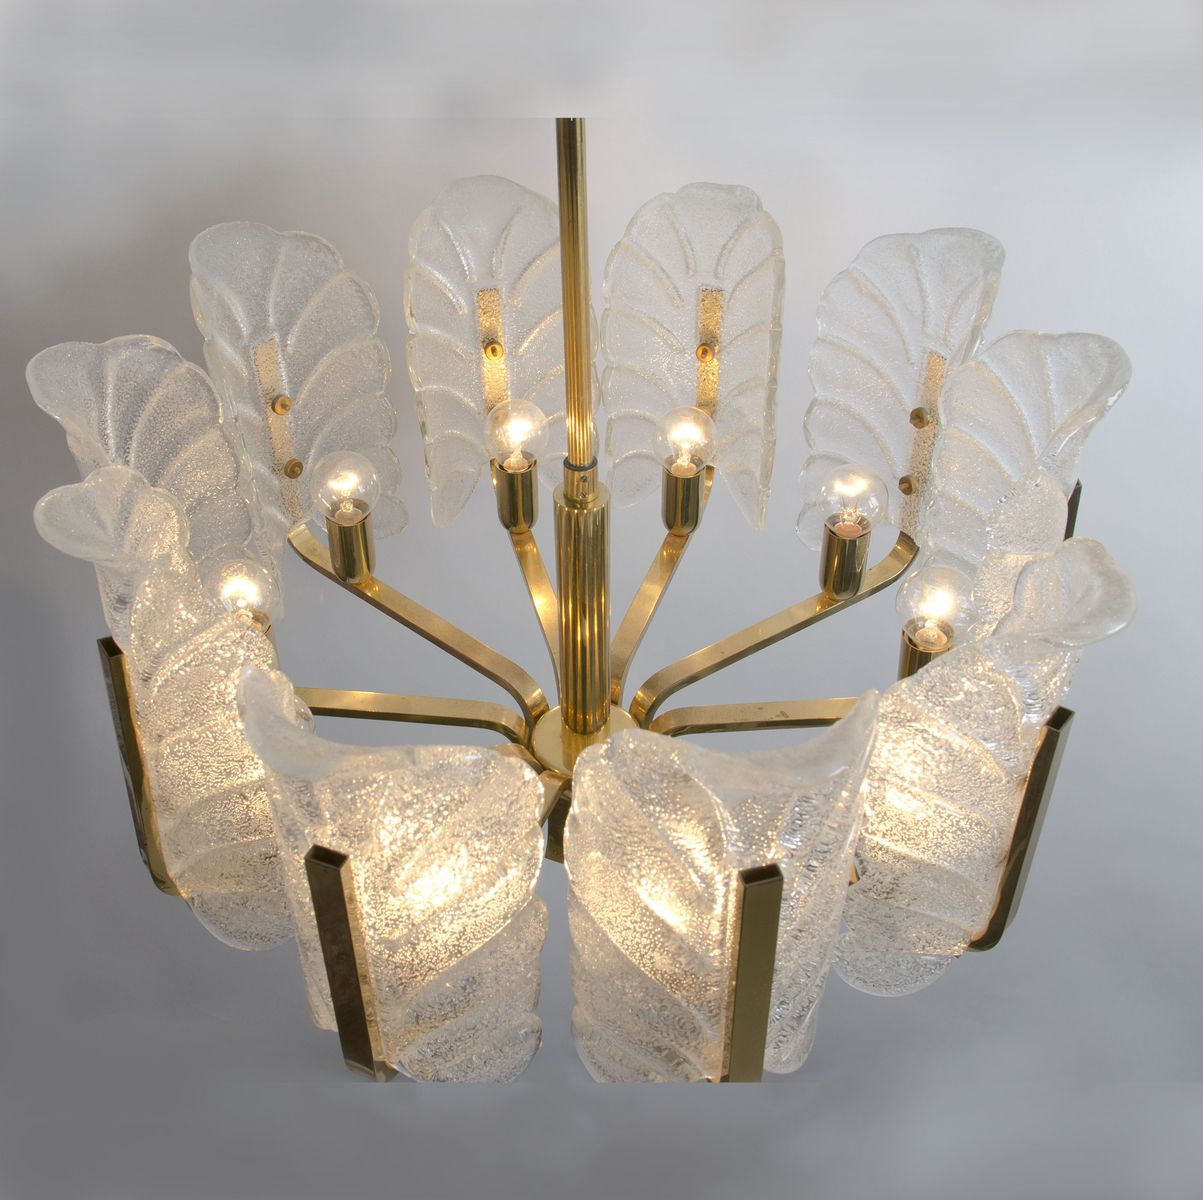 Swedish Large Brass Chandelier with Glass Leaves by Carl Fagerlund – Large Brass Chandelier